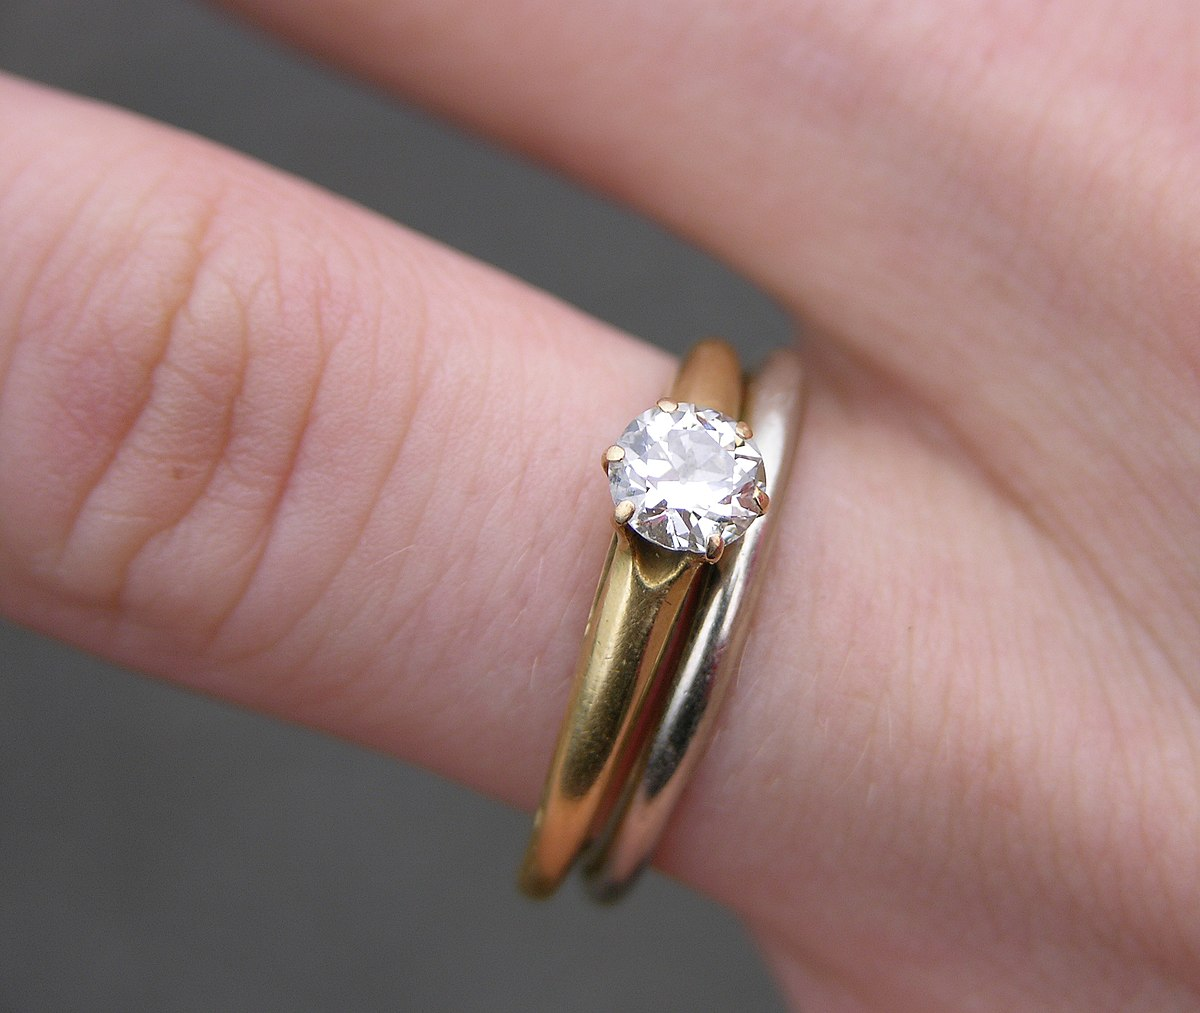 Engagement ring discount wedding rings